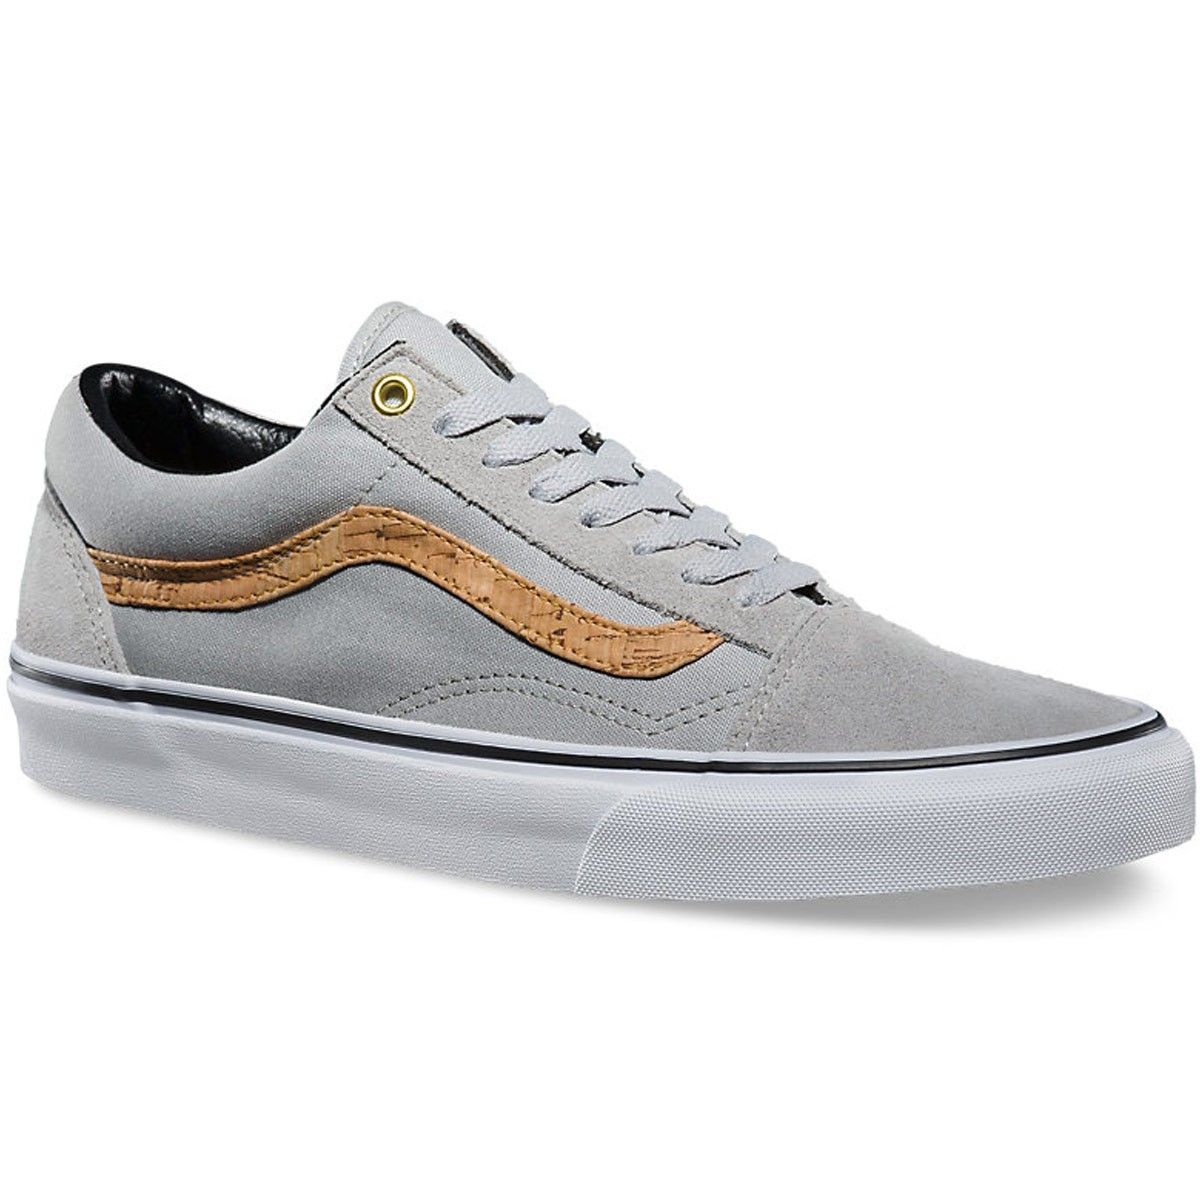 Vans Old Skool Side Stripe Shoes - Highrise Cork - 10.0 ea67cc235fc3